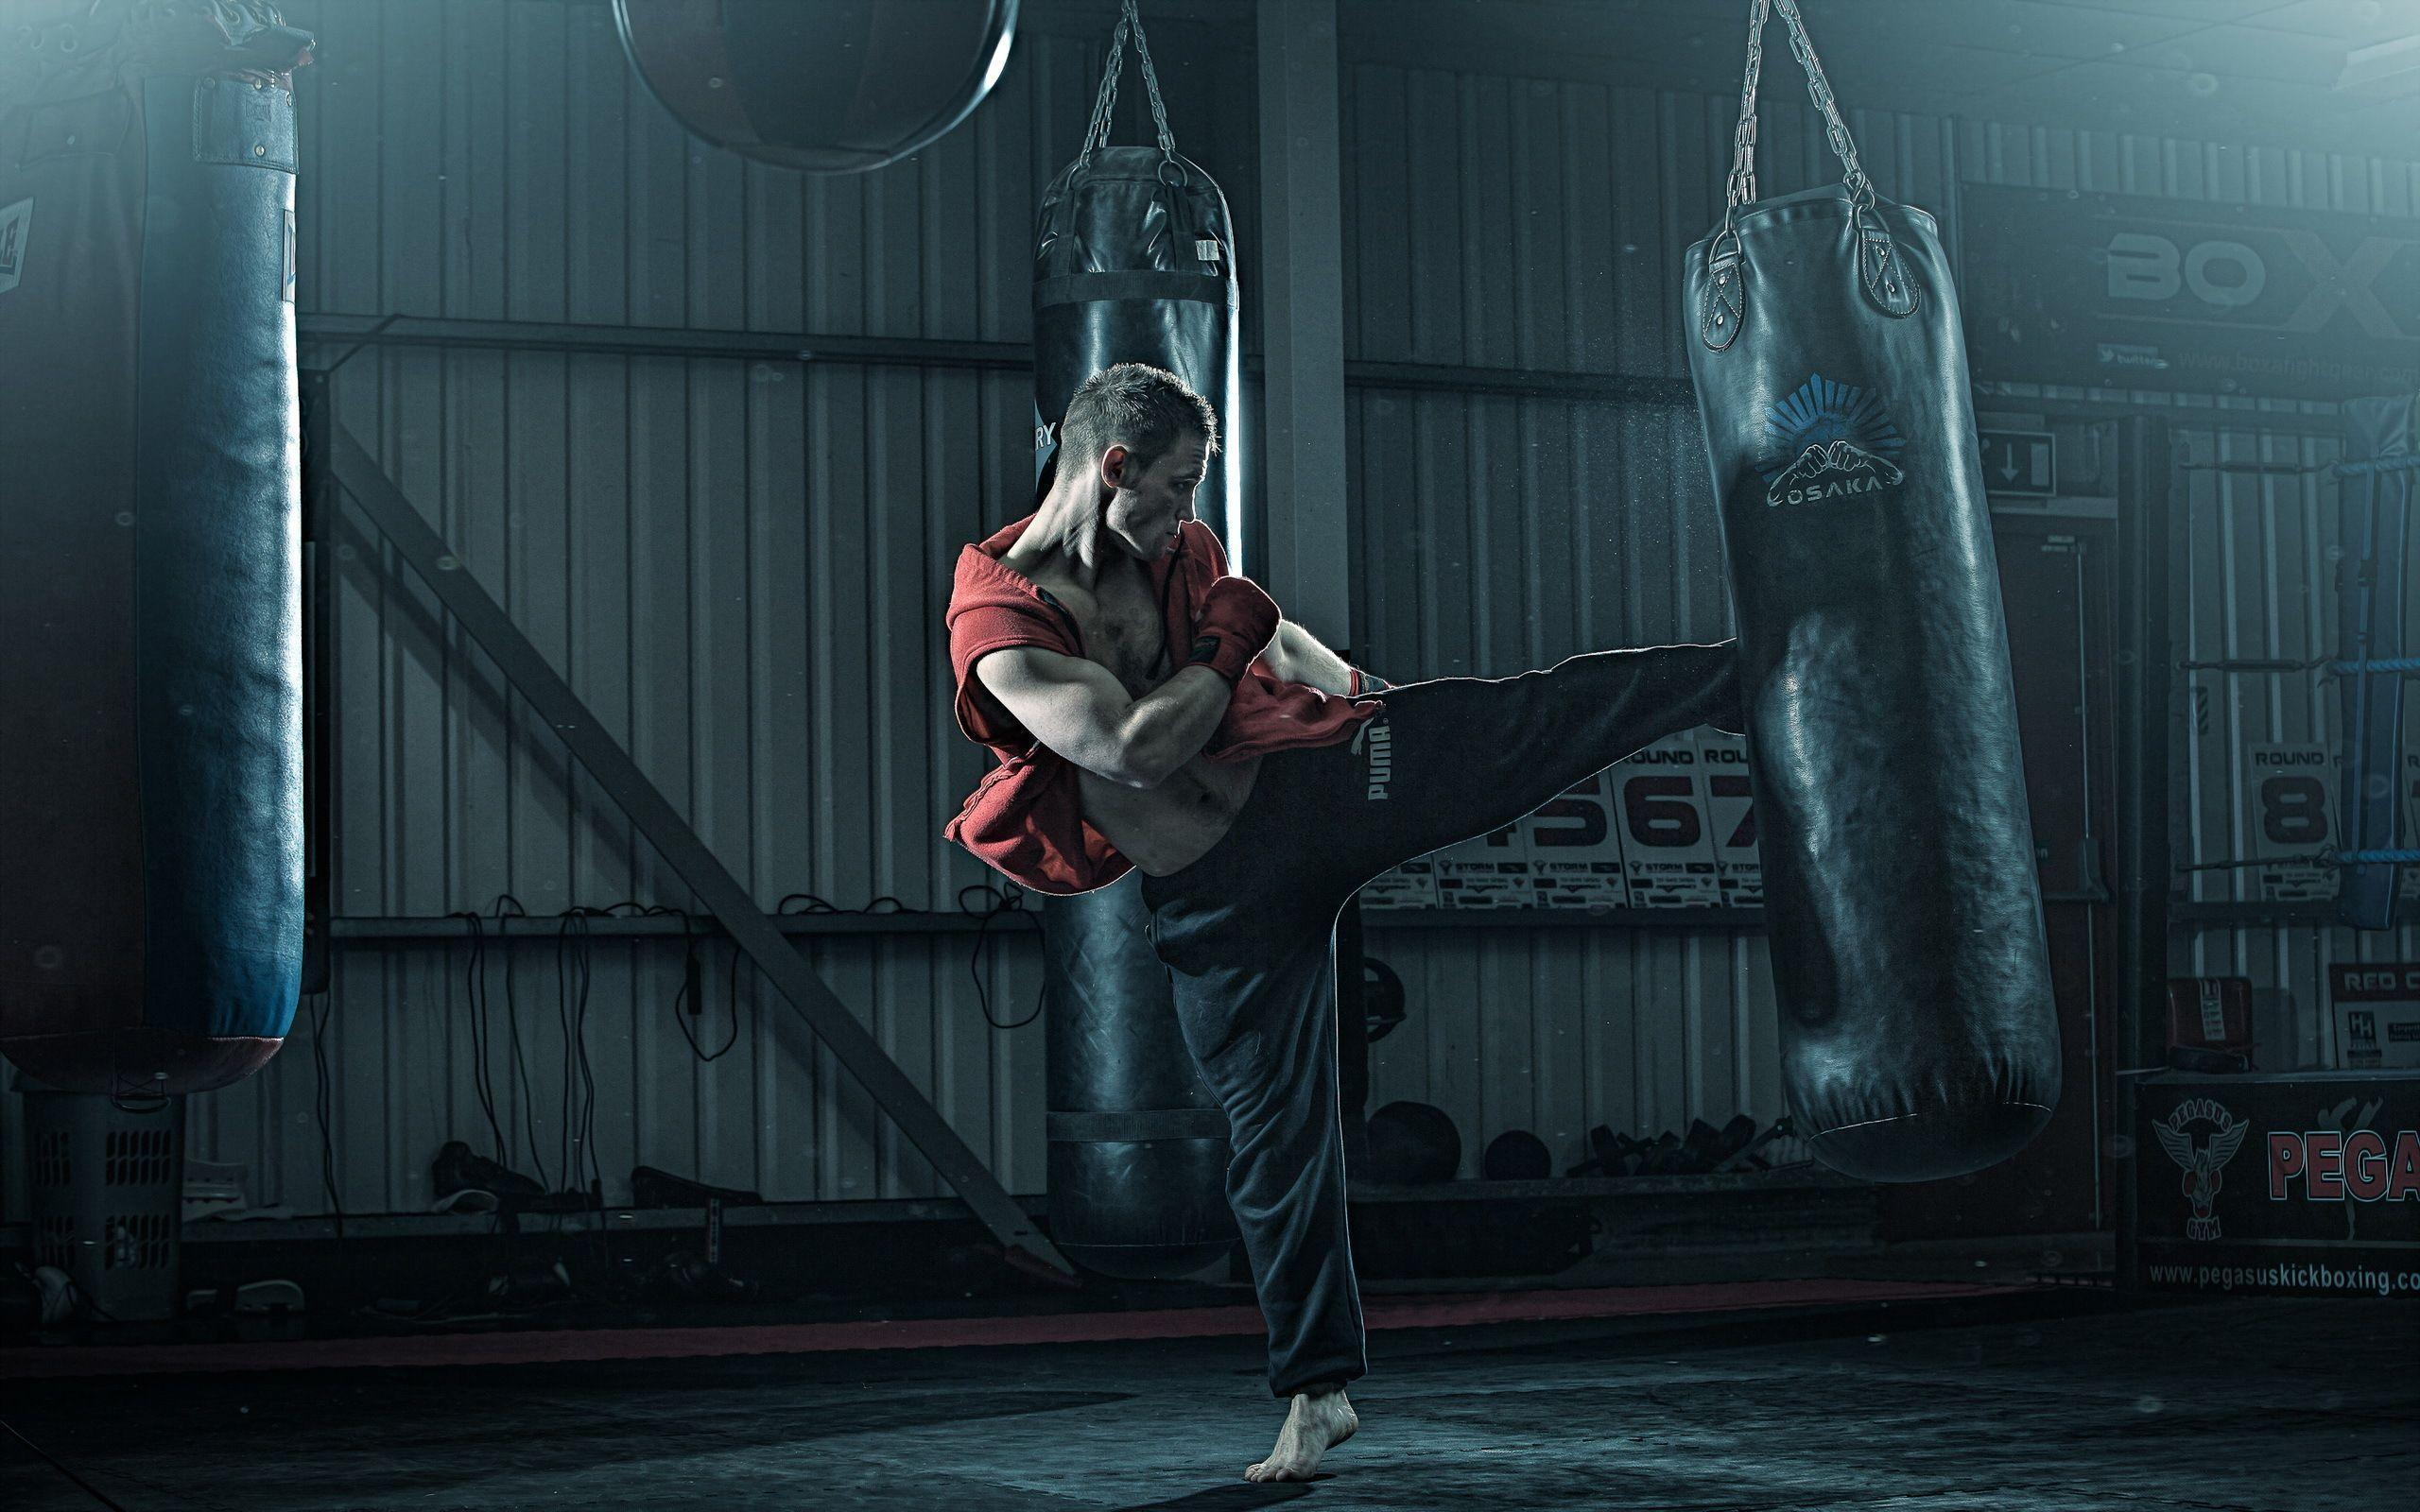 Sports Wallpapers Gym: Kick Boxing Wallpapers